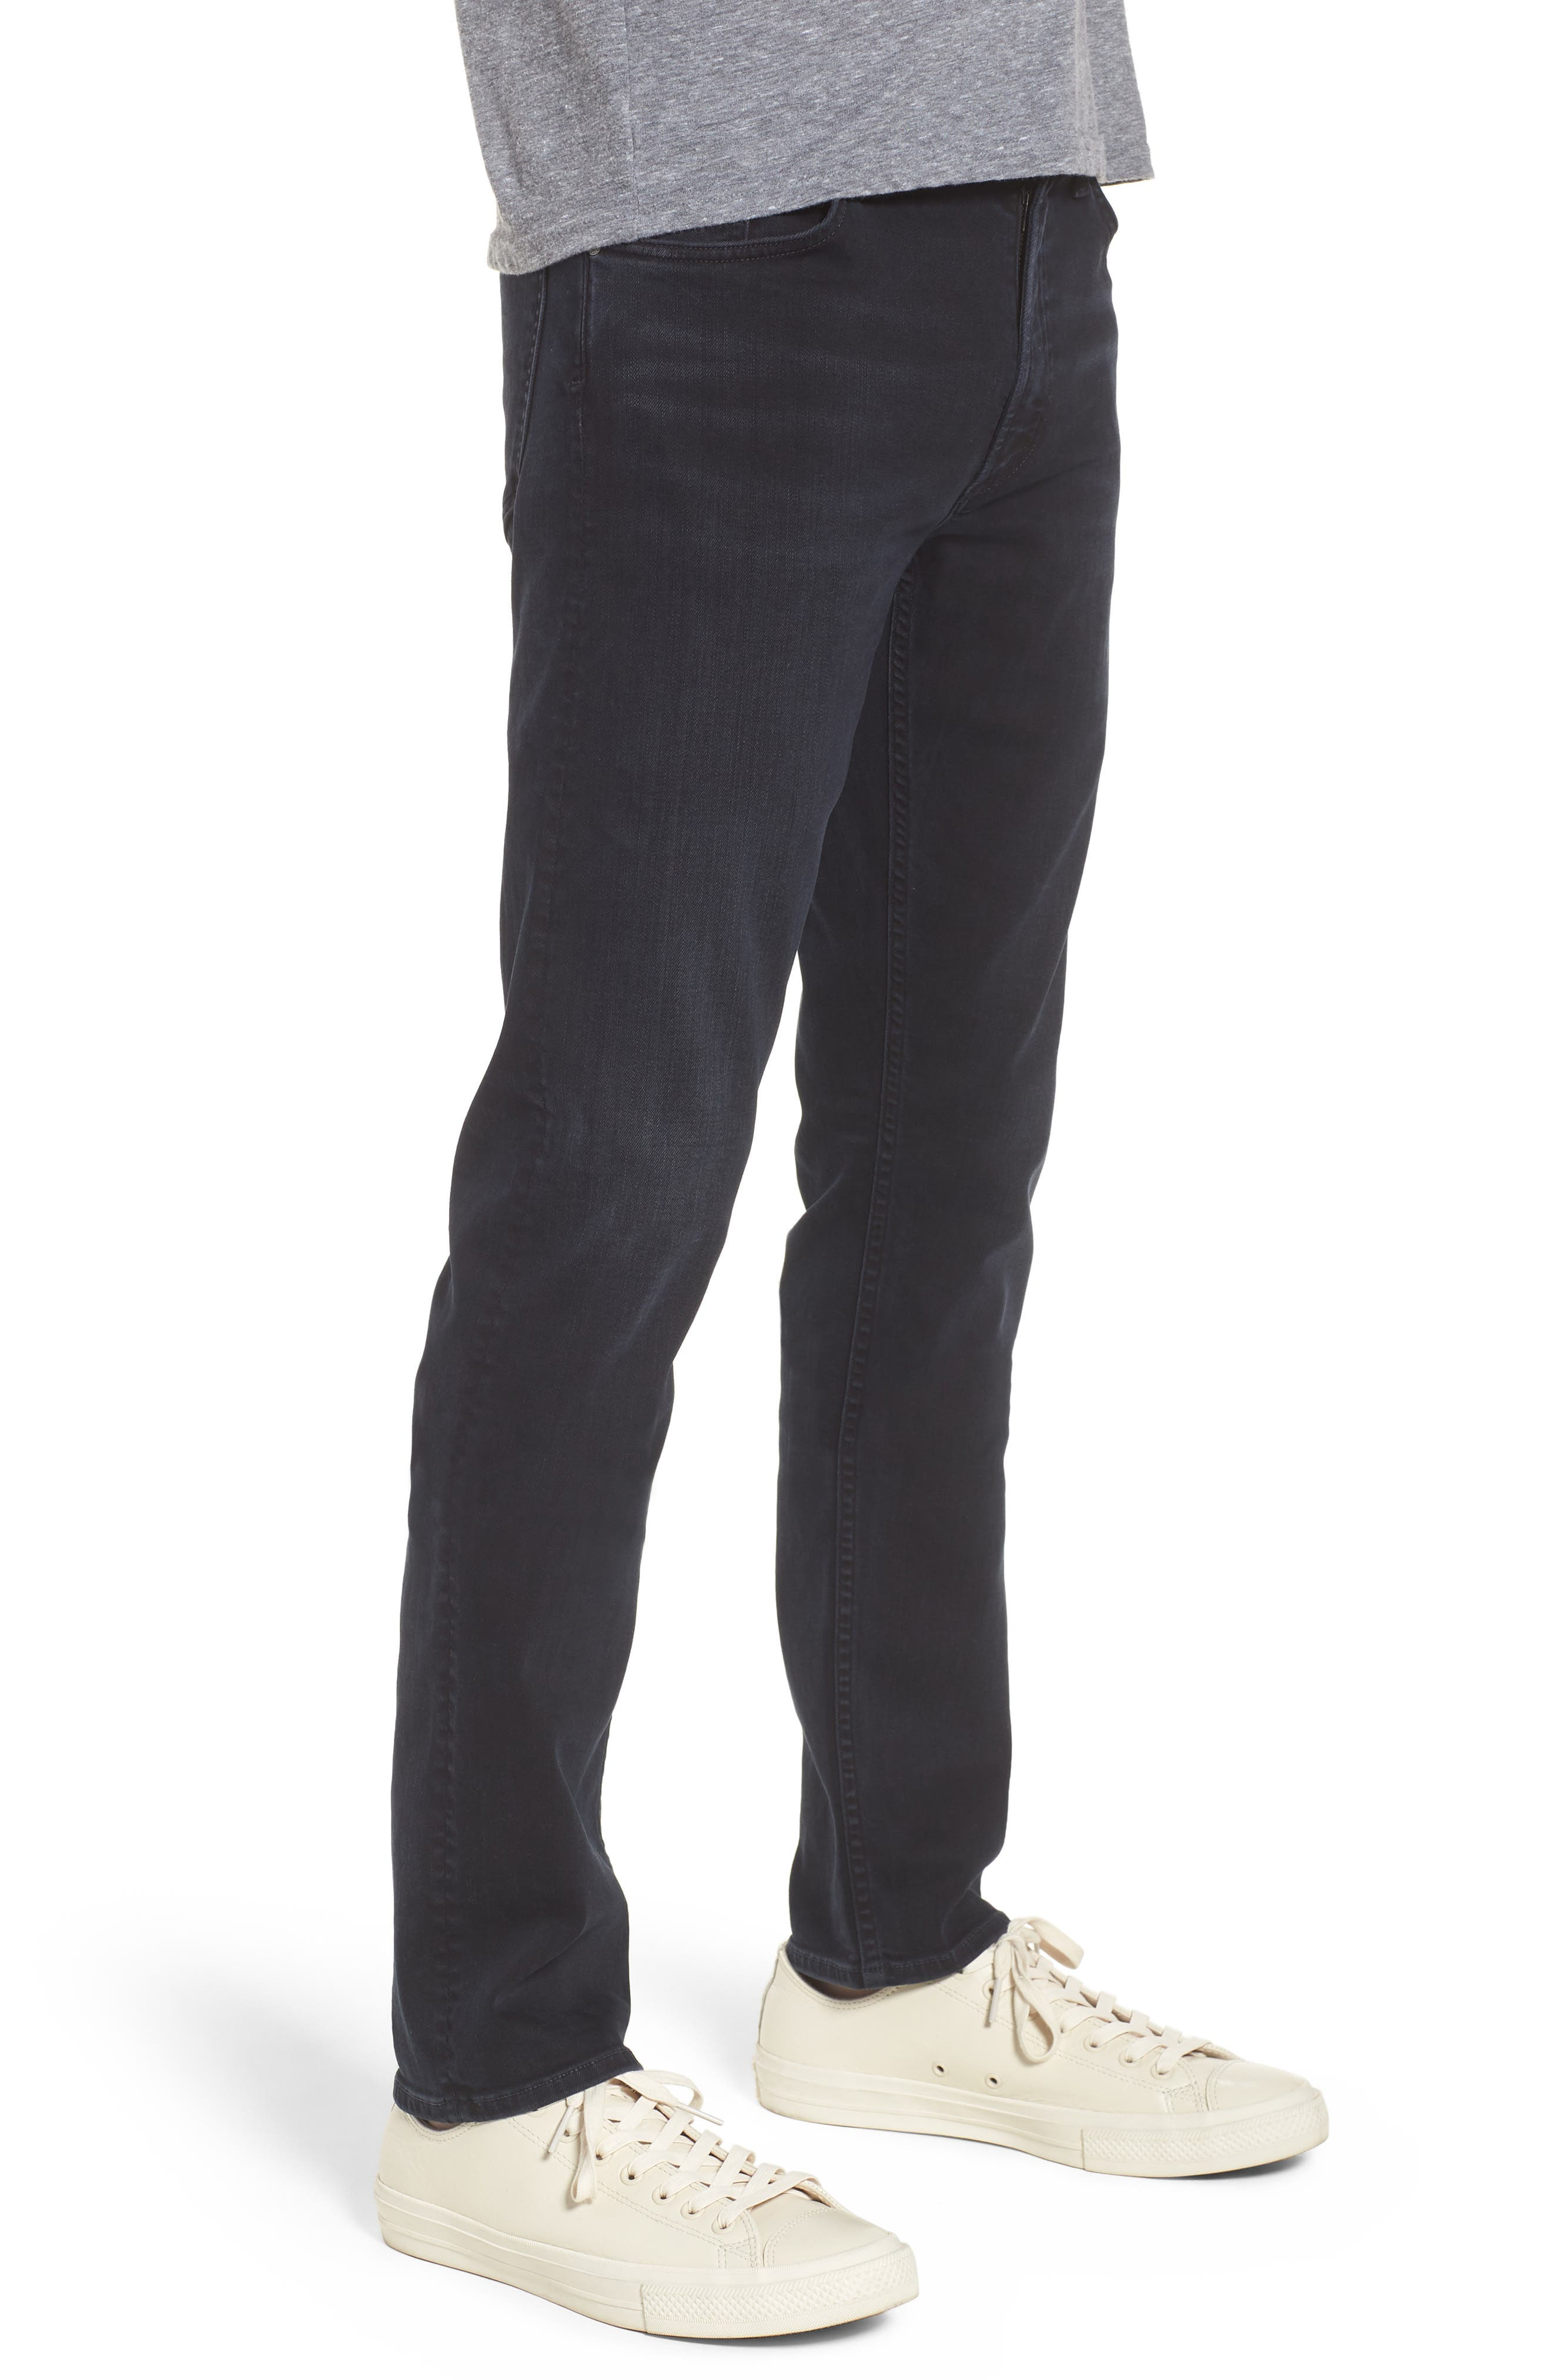 Bowery Slim Fit Jeans,                             Alternate thumbnail 3, color,                             483